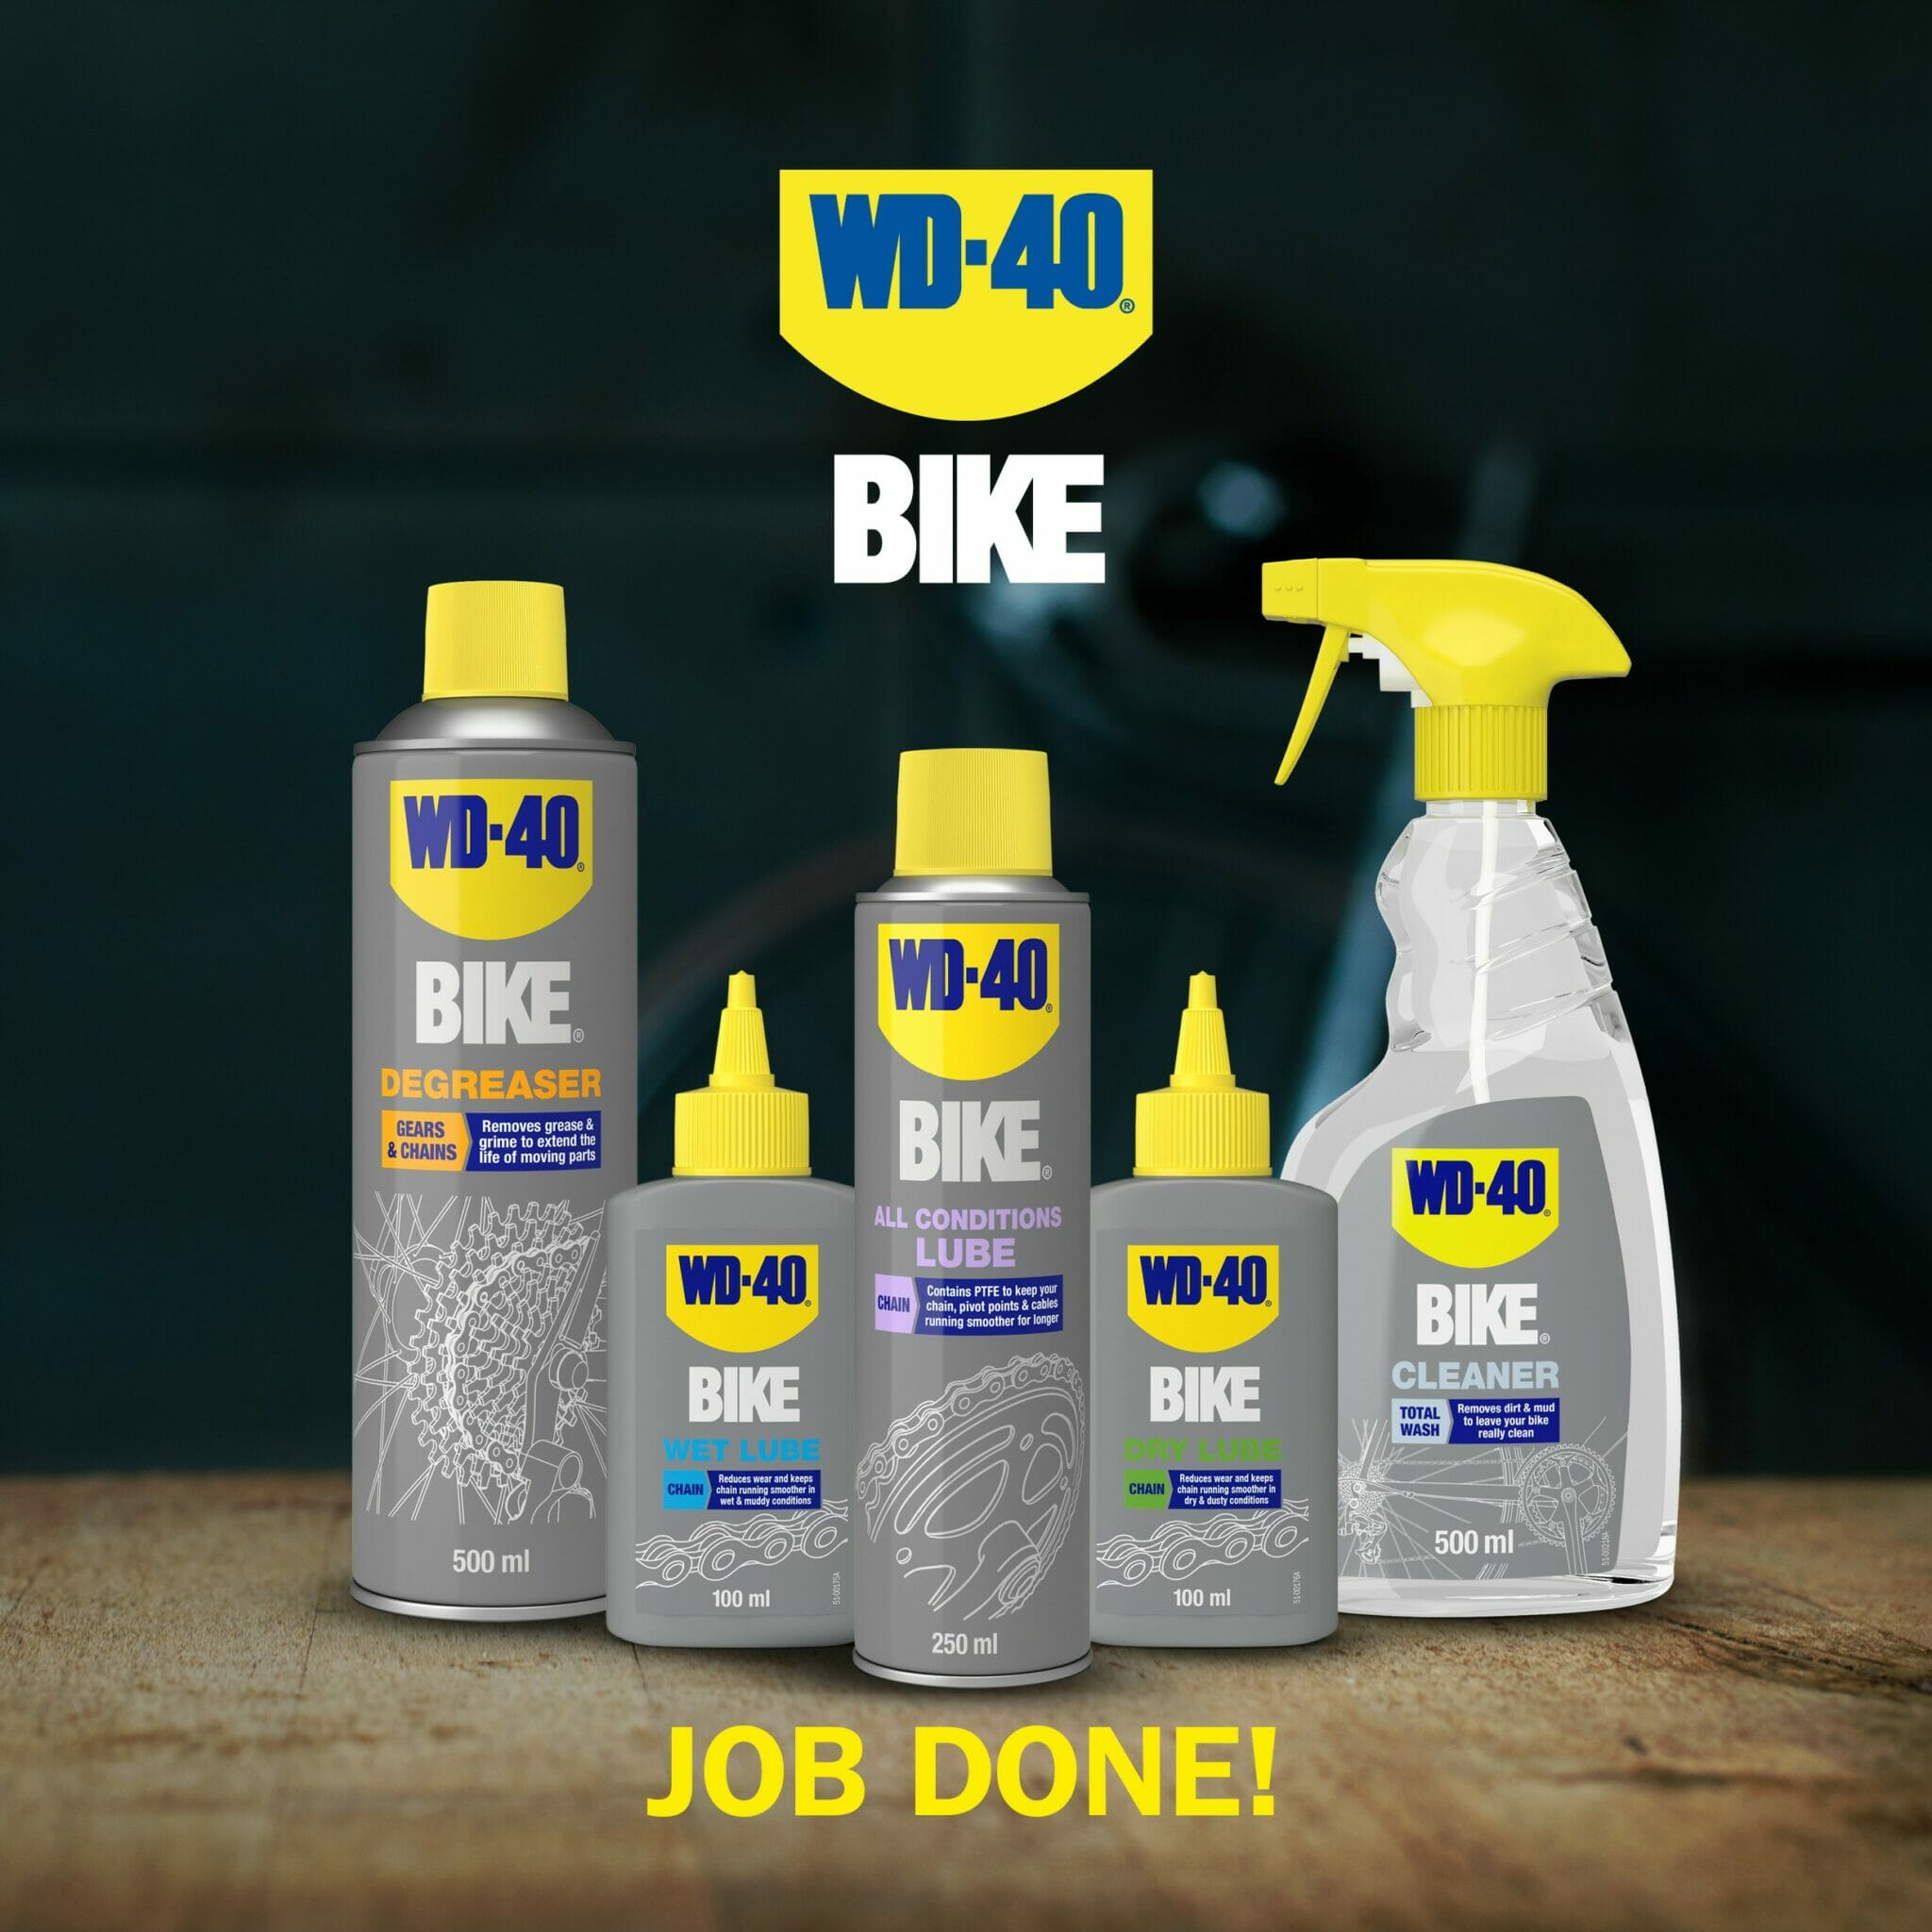 wd40 bike wet lube how to use part 9